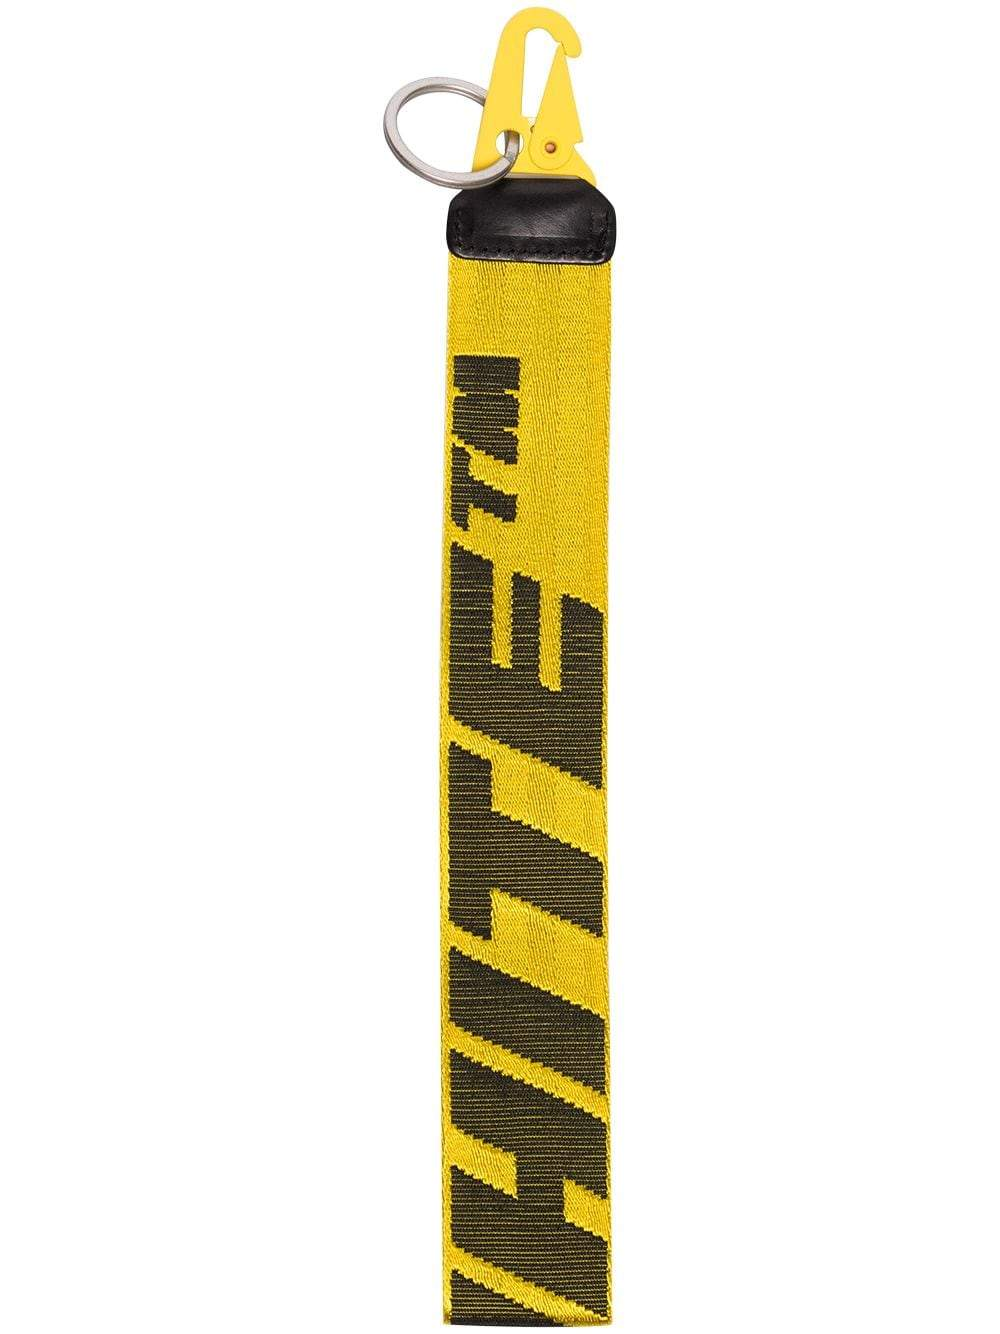 Off-White 2.0 industrial key holder yellow/black